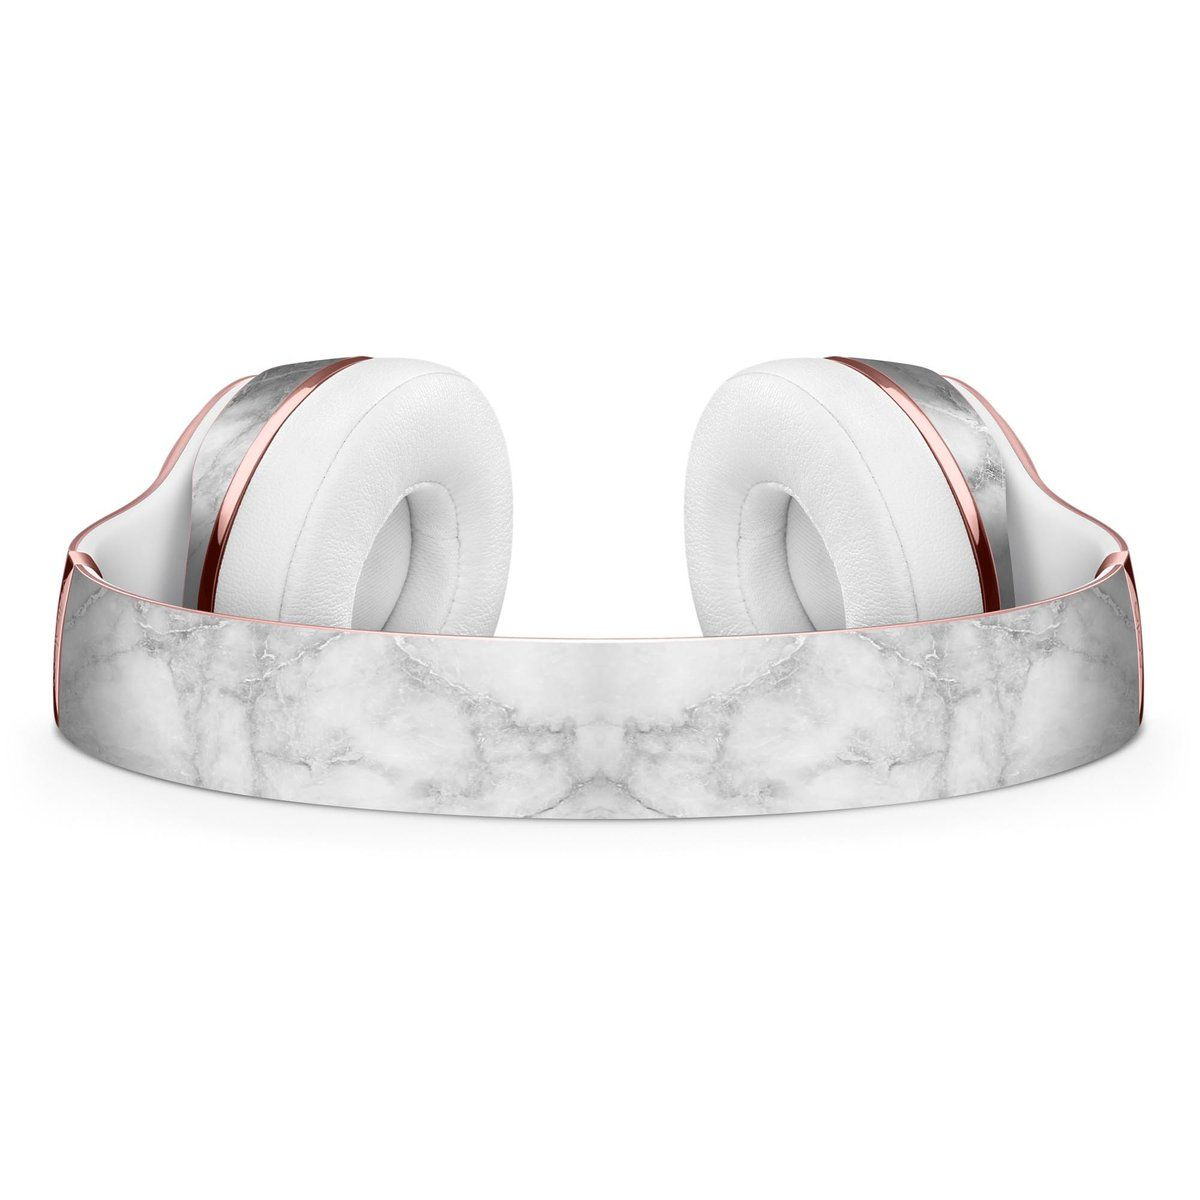 c3e6fcf0f24 White Scratched Marble Full-Body Skin Kit for the Beats by Dre Solo 3  Wireless Headphones